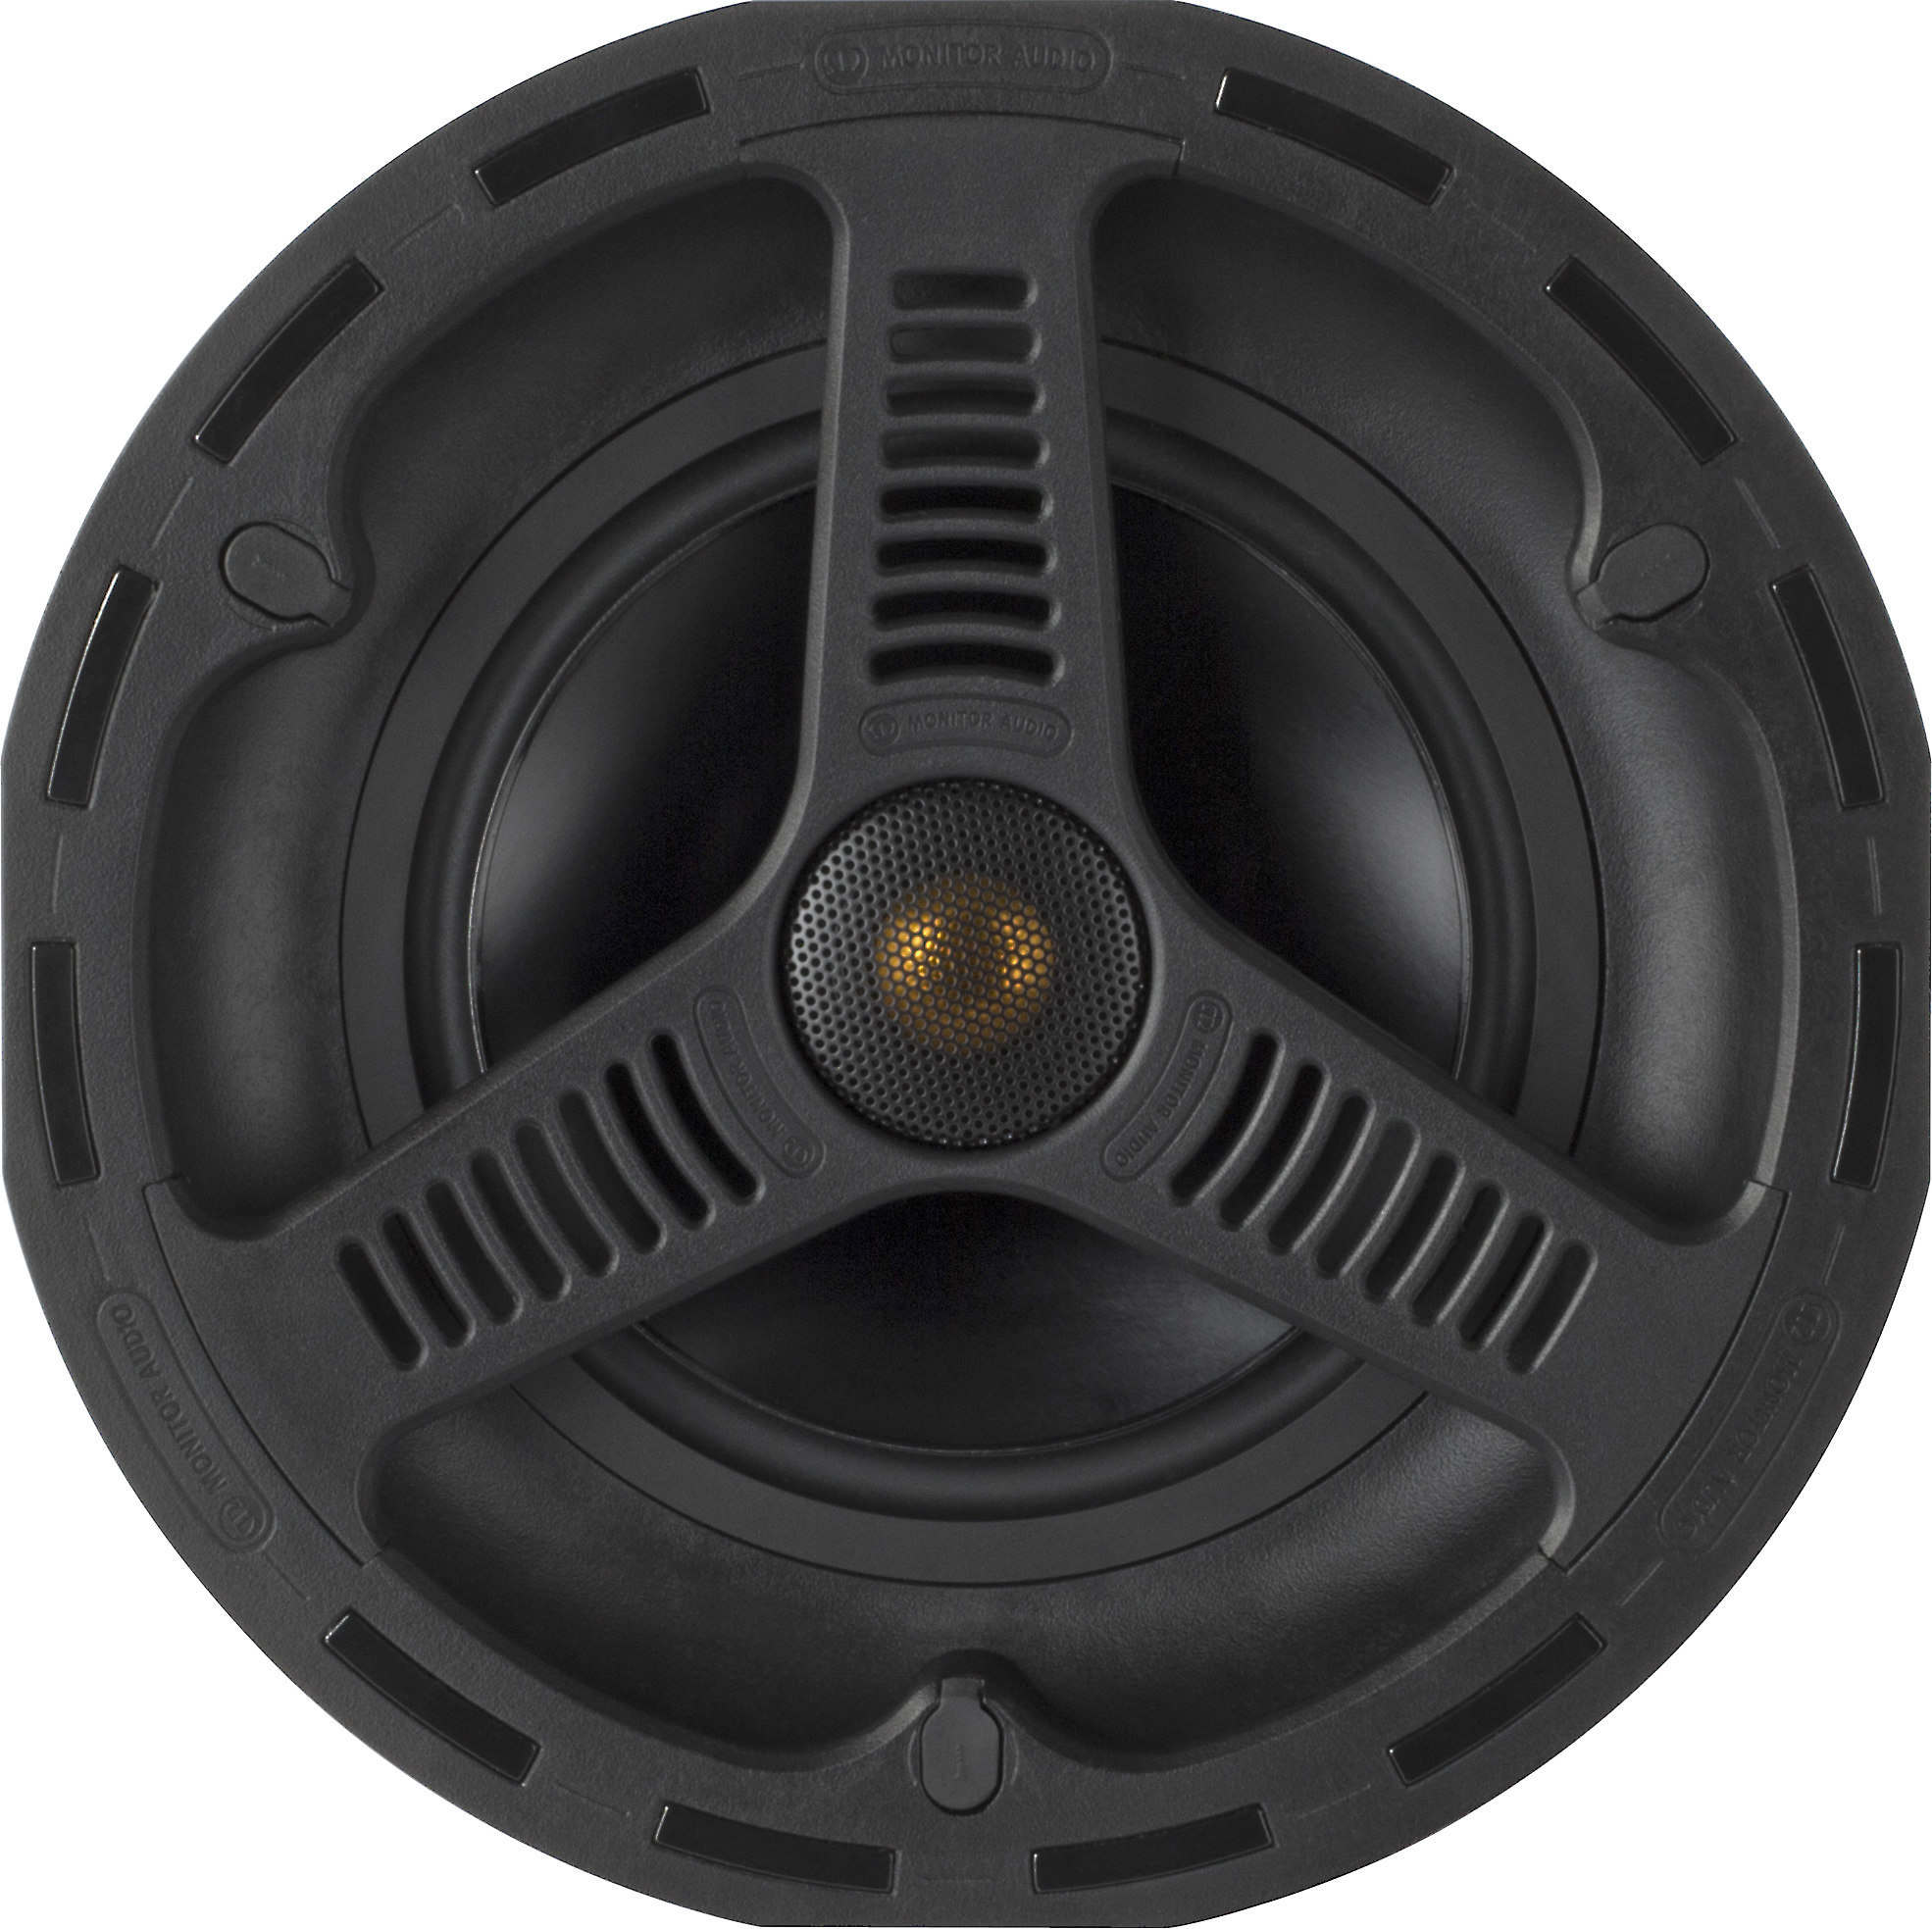 Monitor Audio AWC265 All-weather in-ceiling speaker at Crutchfield